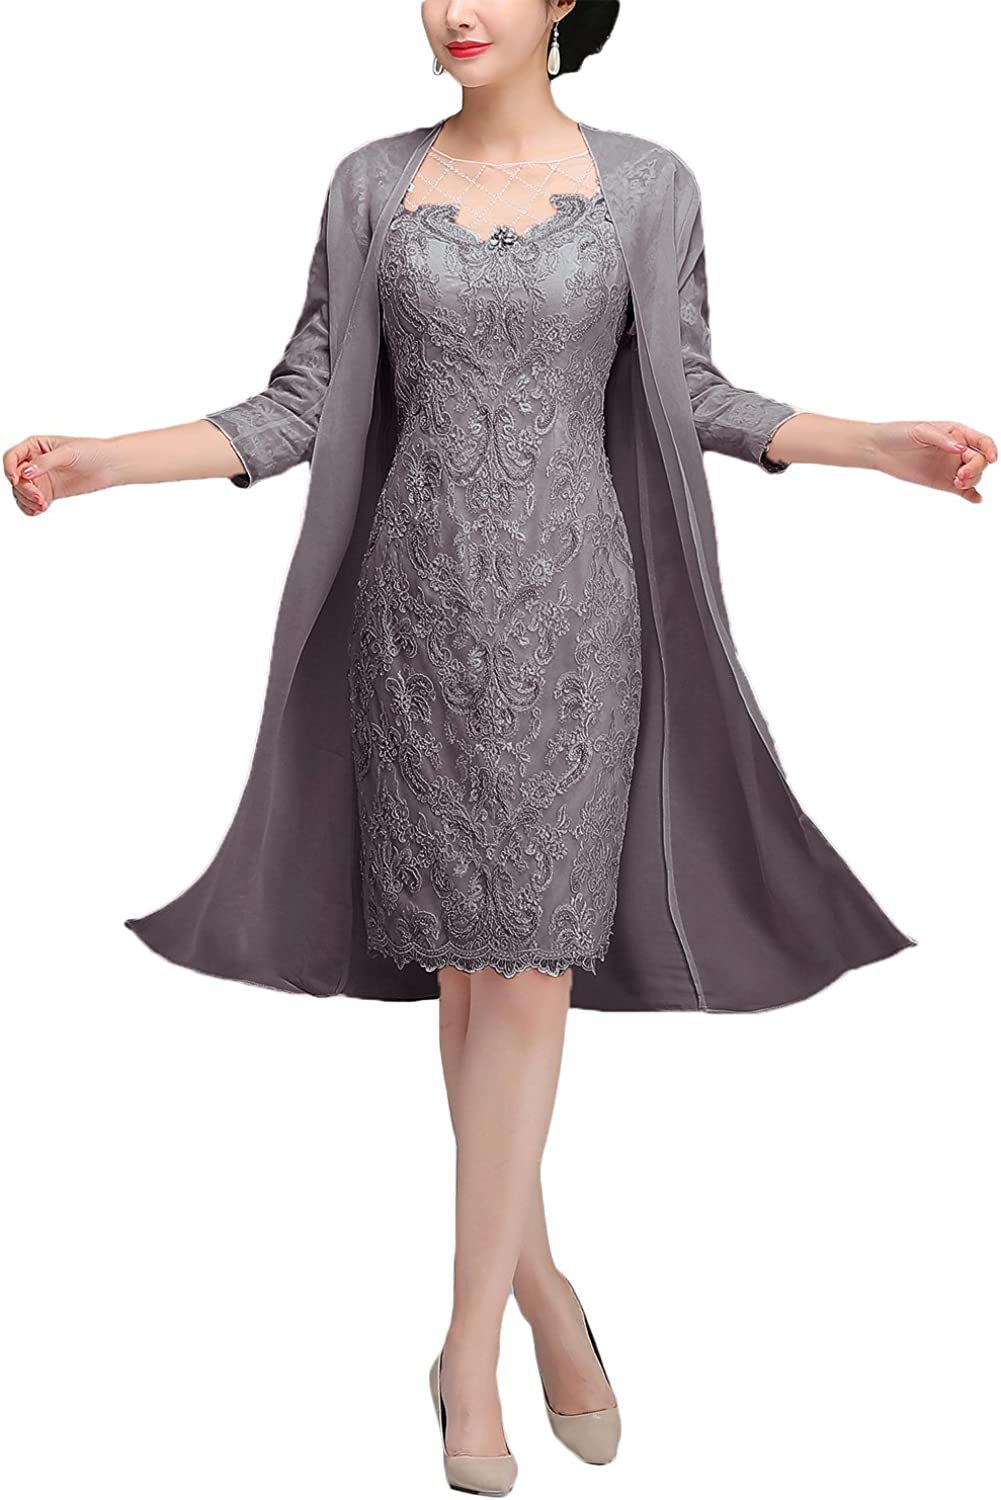 Newdeve Lace Mother Of The Bride Dresses With Jacket Tea Length Formal Gowns